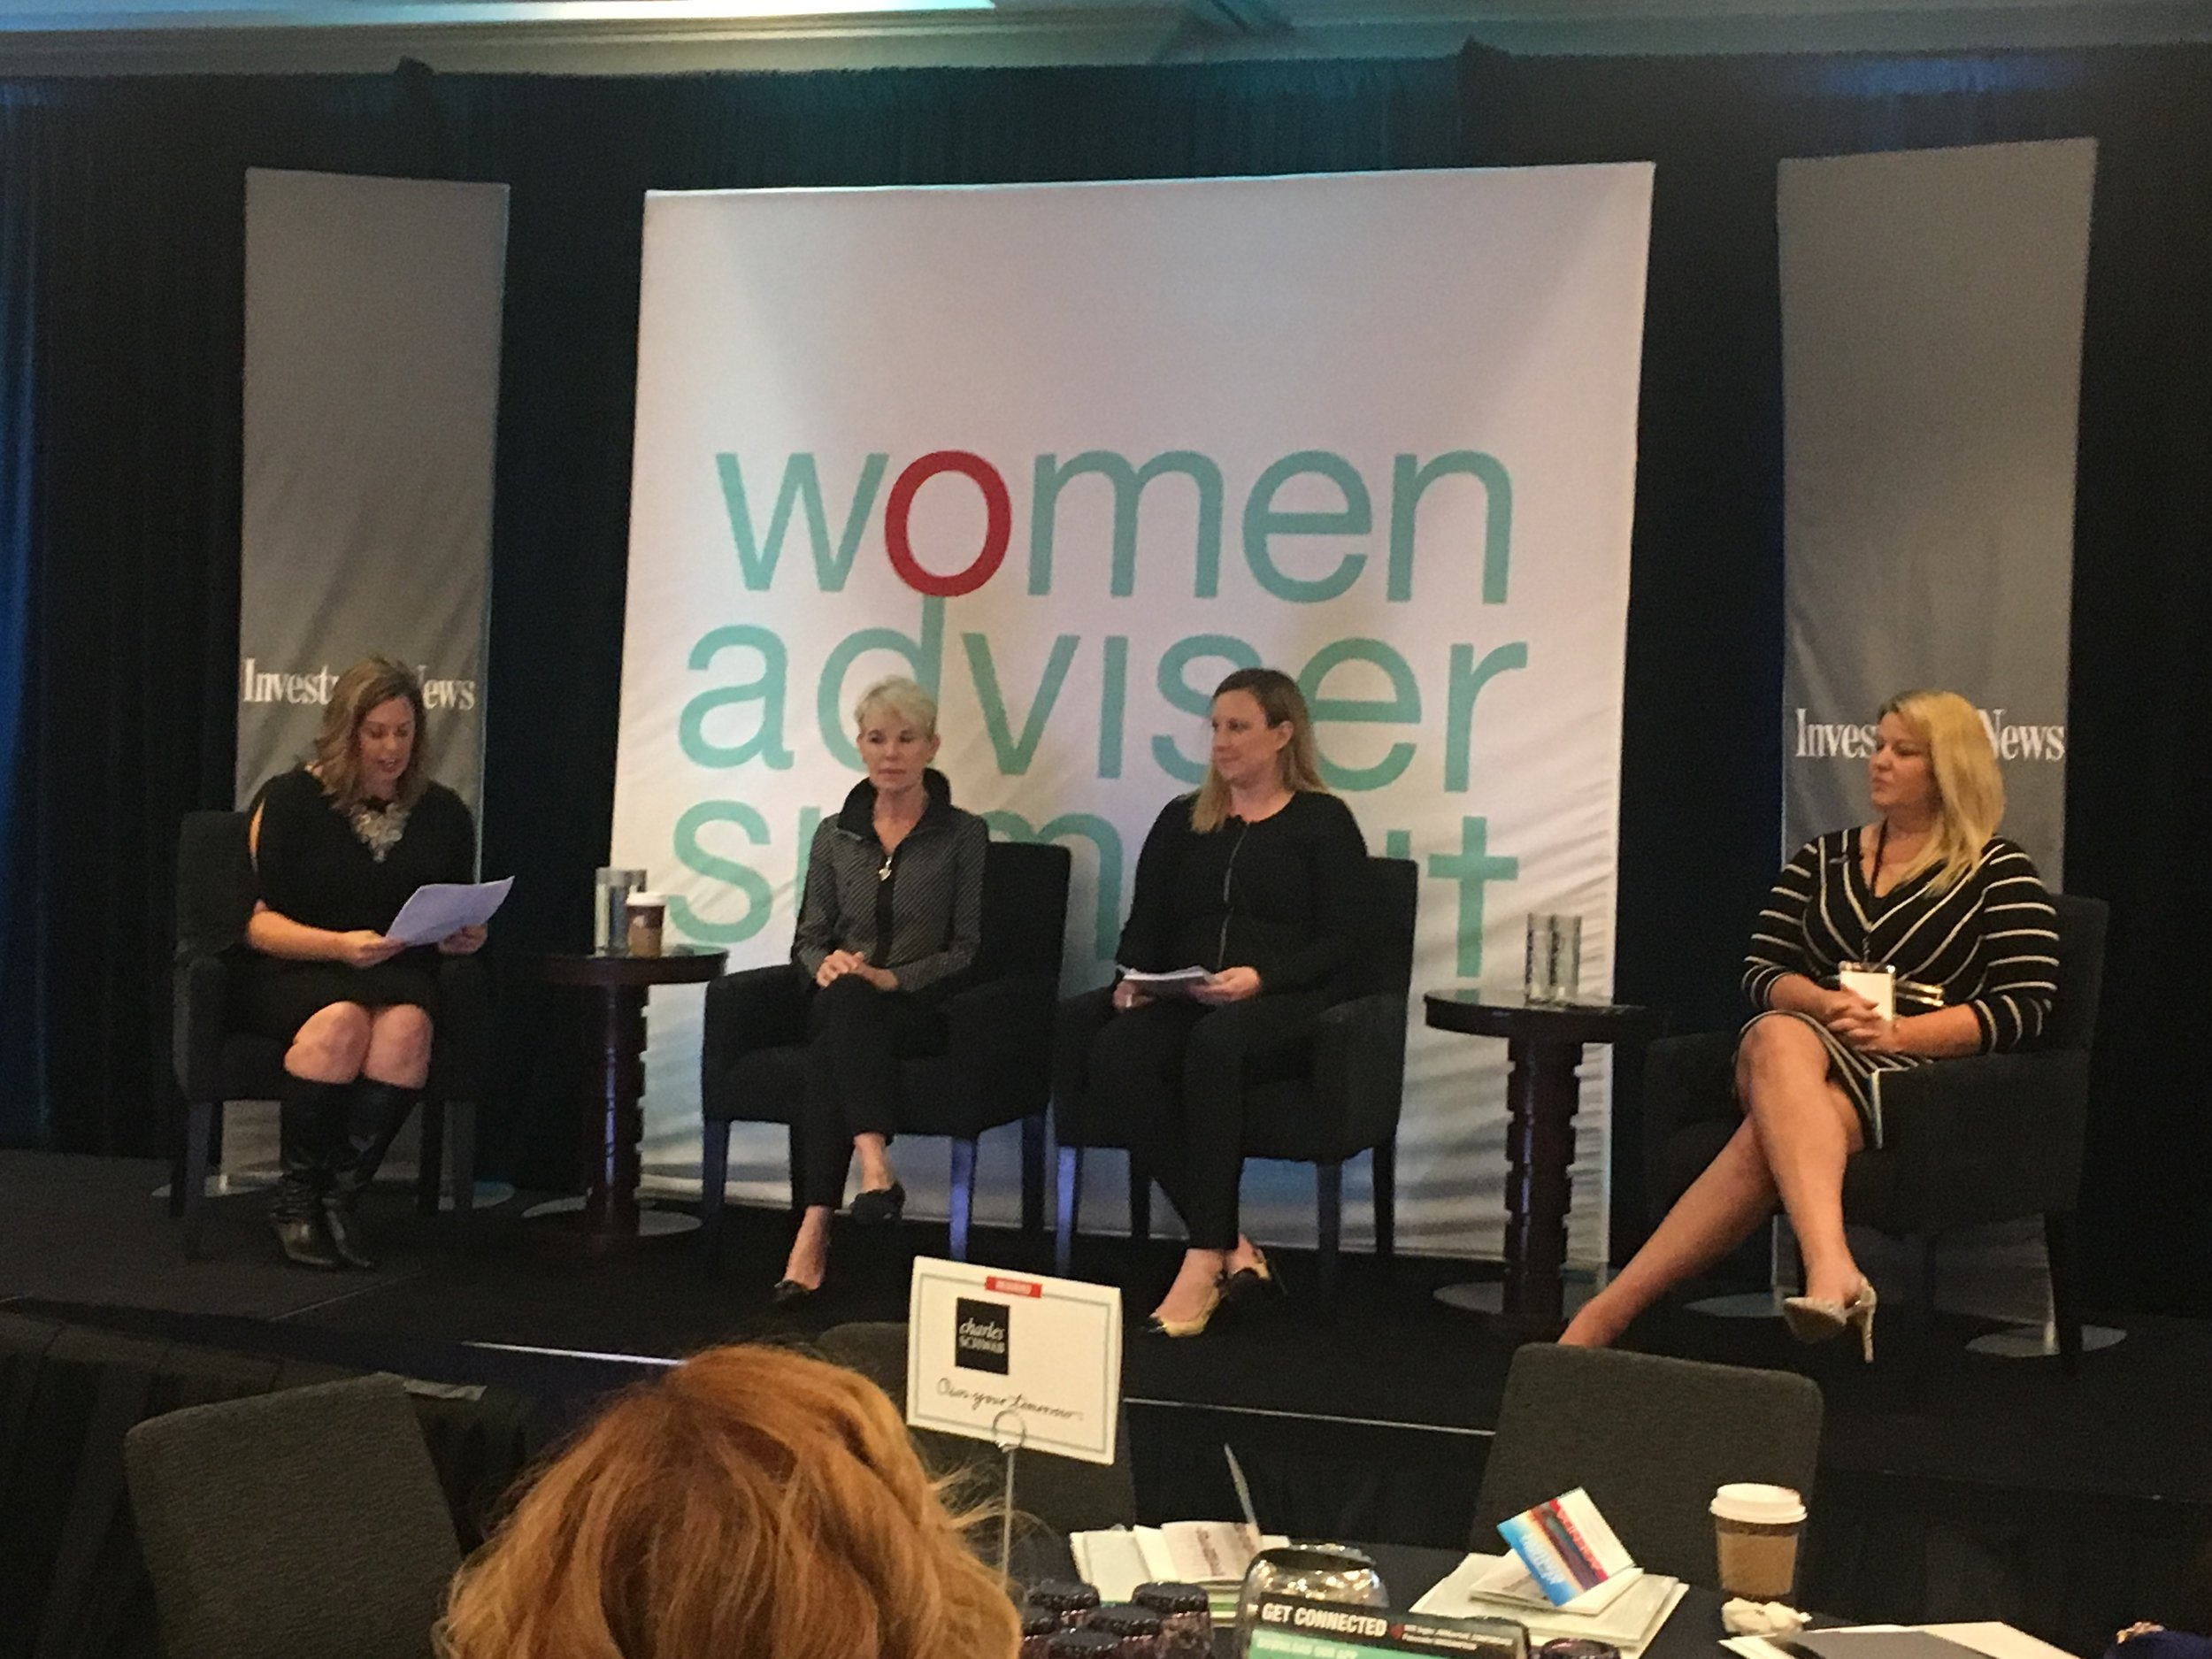 Cofounder of The W Source™ Hannah Buschbom (center right) discussing business growth strategies with Theresa Gralinski (left), Joni Youngwirth (center left) and Kristi Straw (right) at the InvestmentNews Women Adviser Summit in San Francisco, CA.